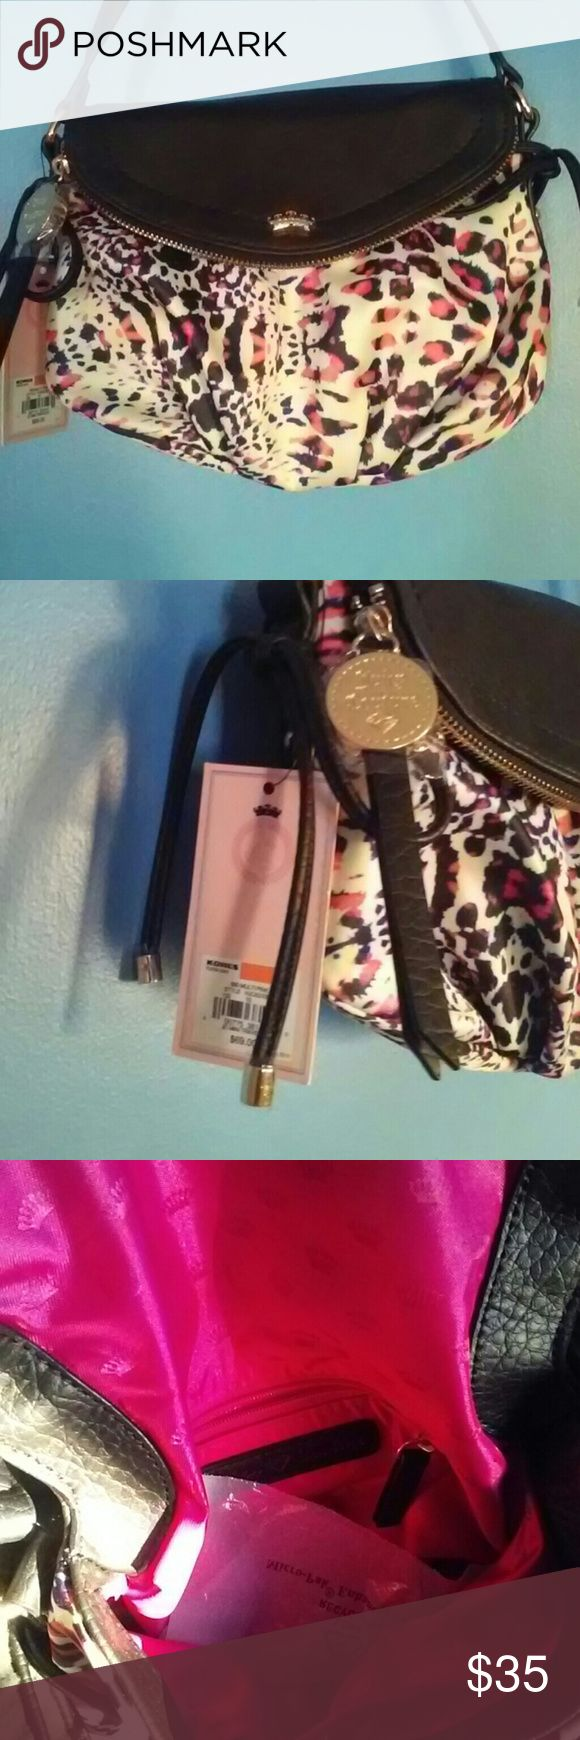 BNWT Juicy Couture Mini Crossbody Never used, brand new with tags Juicy Couture Bags Crossbody Bags